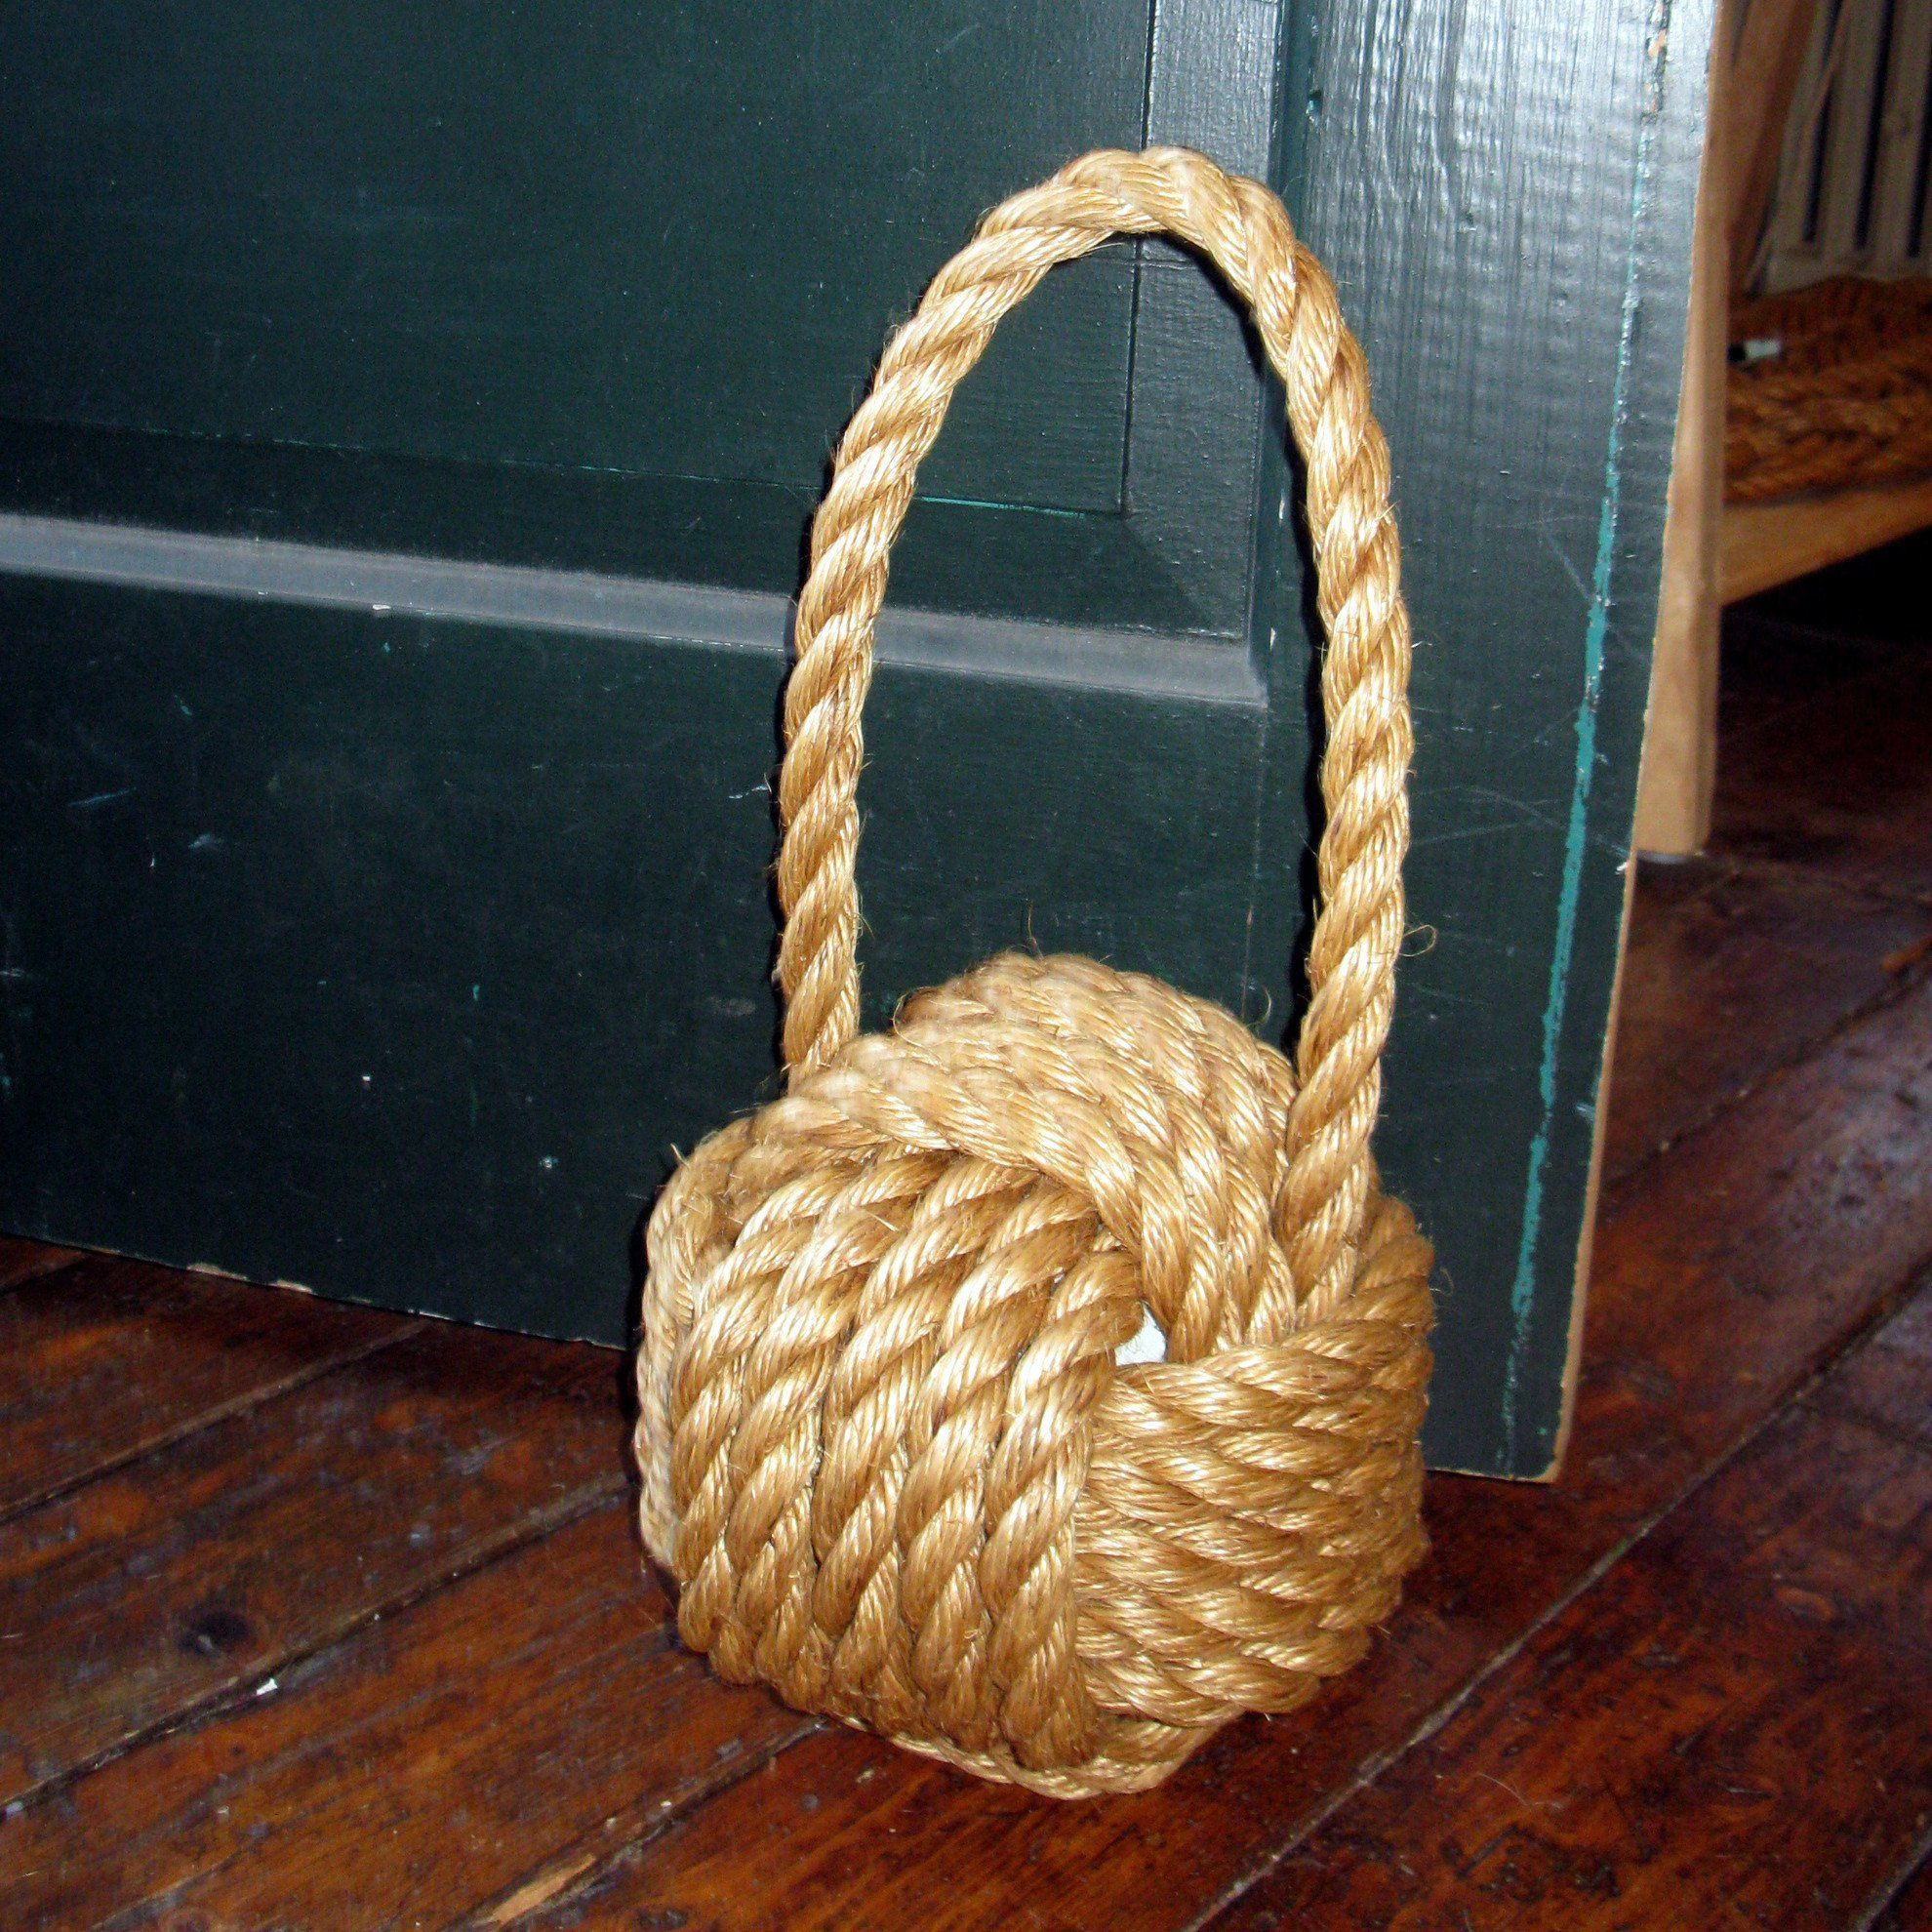 Nautical Knot Monkey Fist Door Stop, Large Manila handmade at Mystic Knotwork